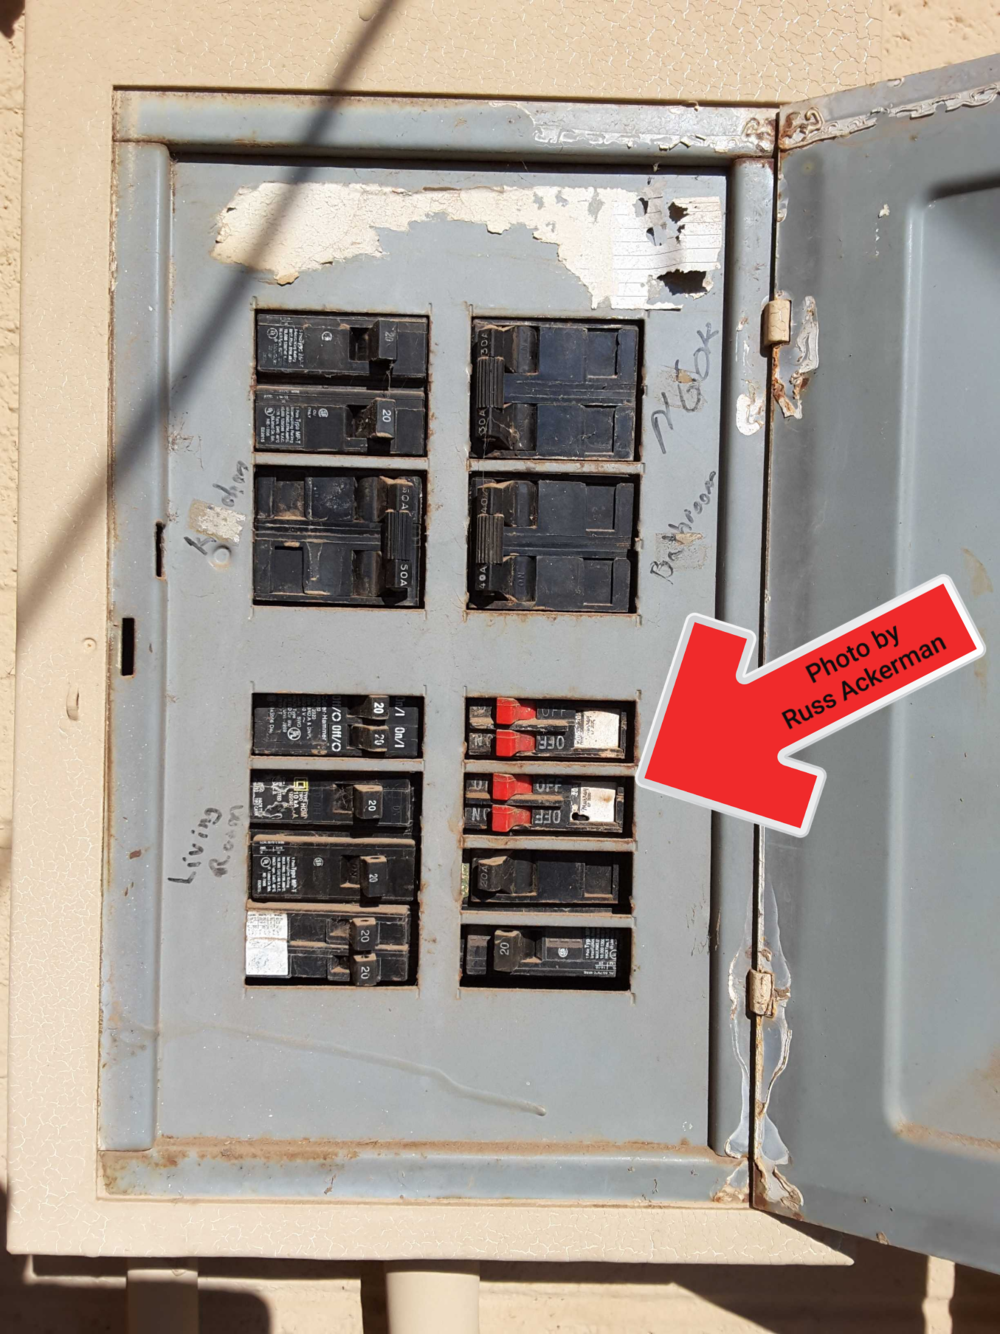 This electrical panel is full, poorly labeled and has mismatched breakers. Take care of the safety hazards now and a plan on upgrading this panel in the future.